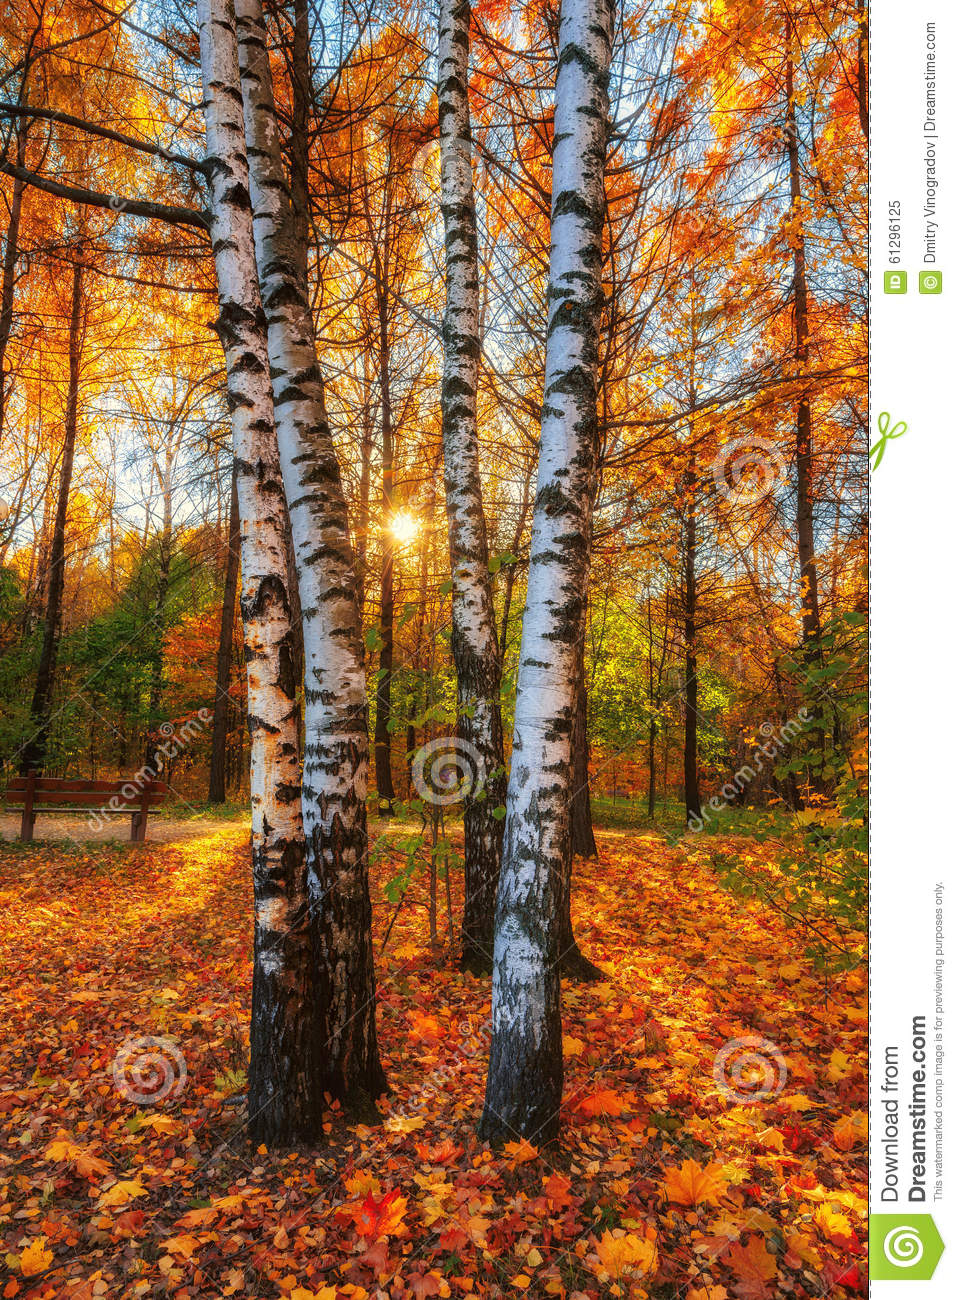 Fall Birch Tree Wallpaper Beautiful Autumn Morning In The Park With Soft Golden